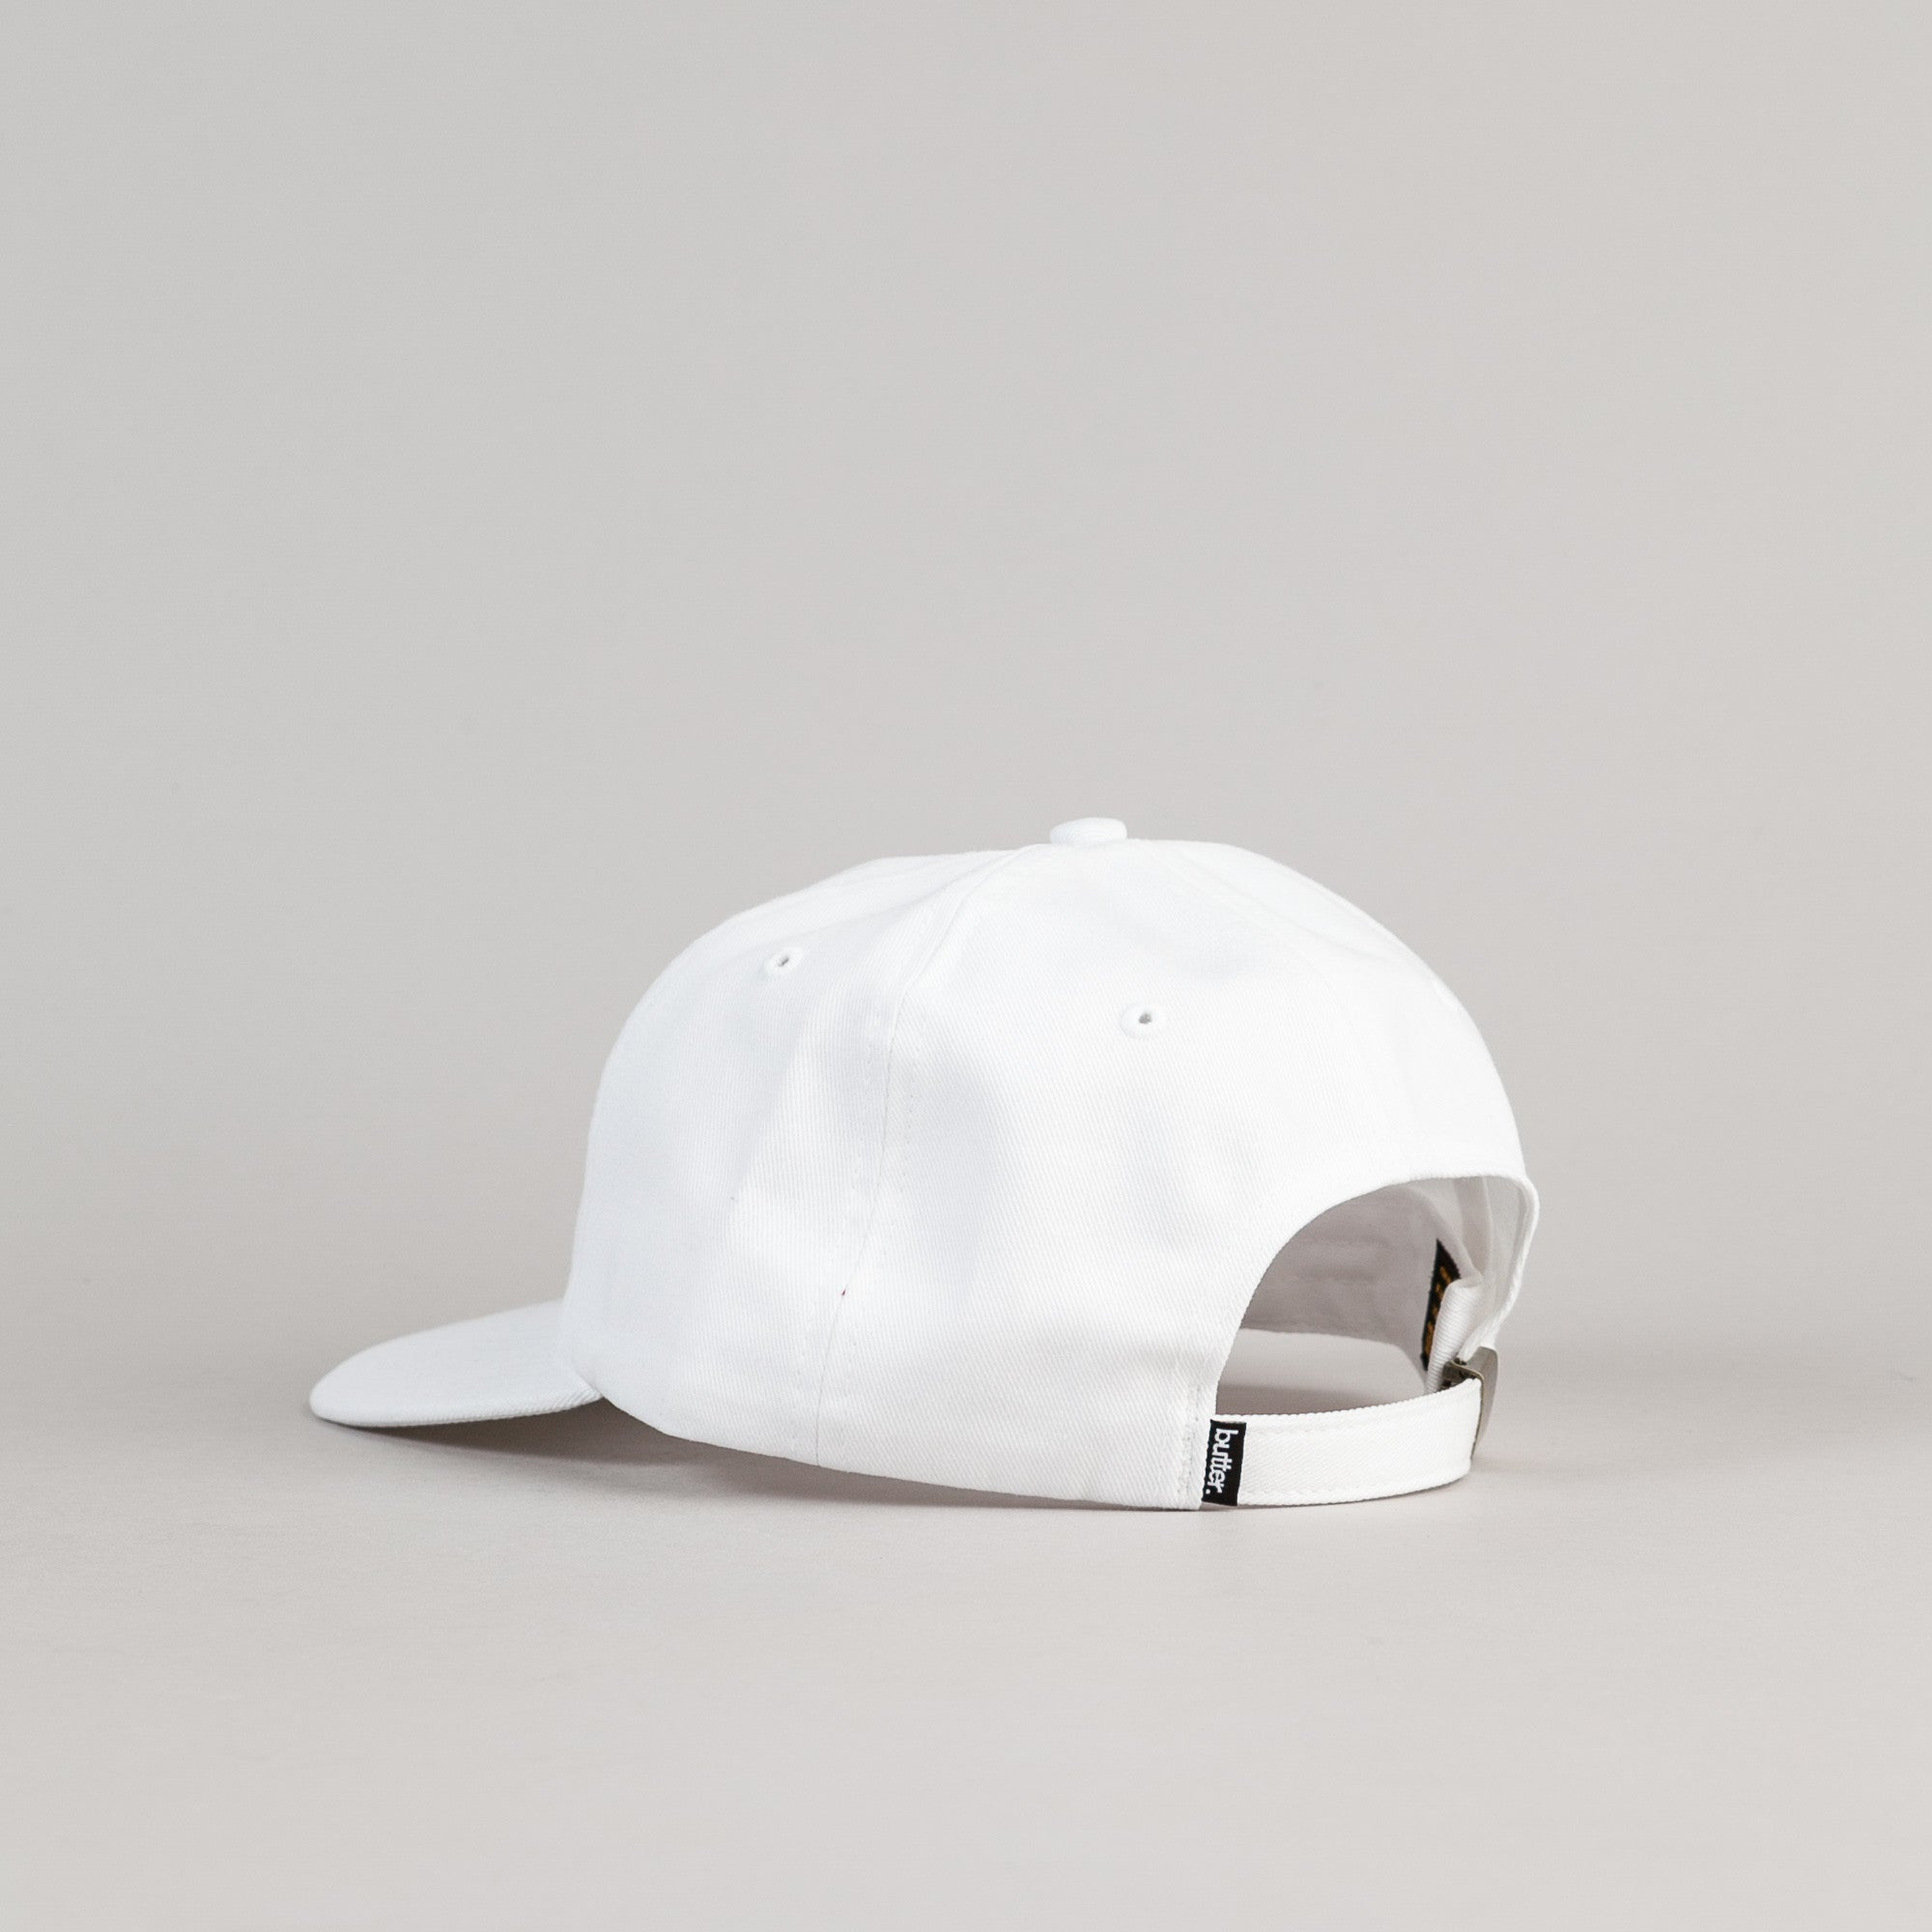 Butter Goods Golf 6 Panel Cap - White